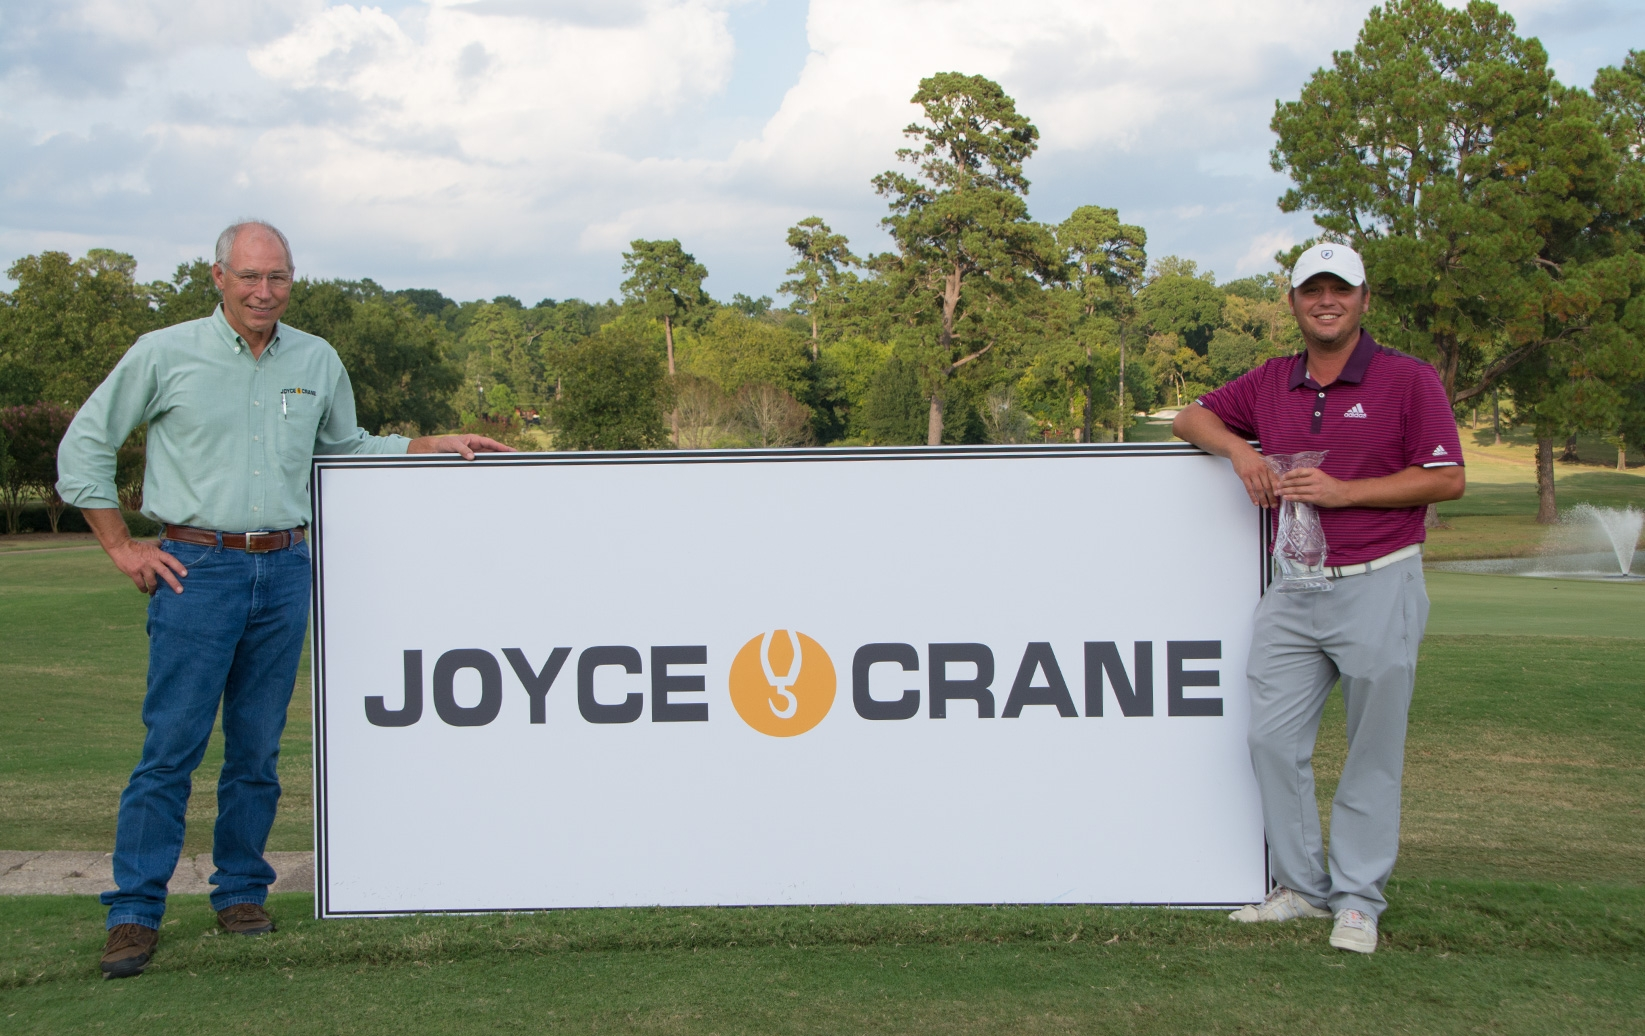 Norman Claims Joyce Crane Section Championship, Nabs Exemption Into 2018 AT&T Byron Nelson